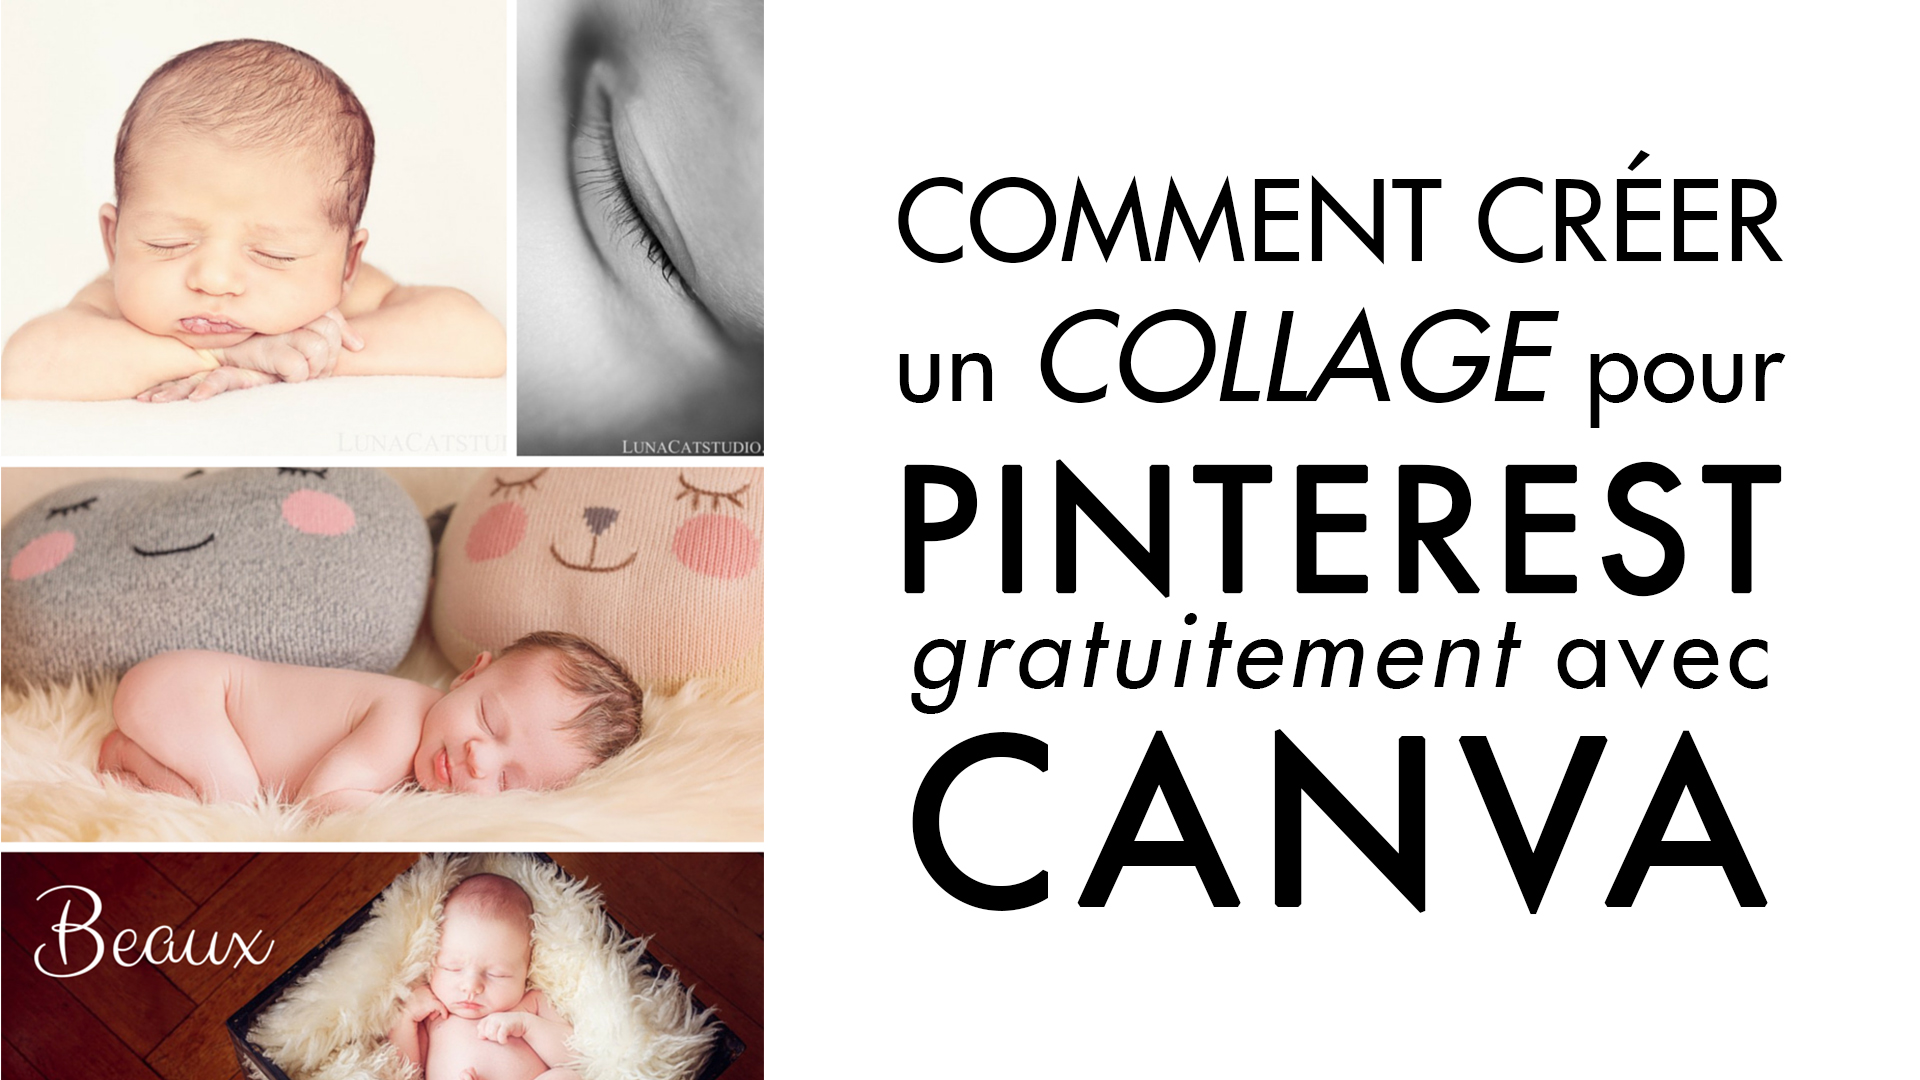 comment cr u00e9er un collage photo pour pinterest avec canva   - lunacat studio